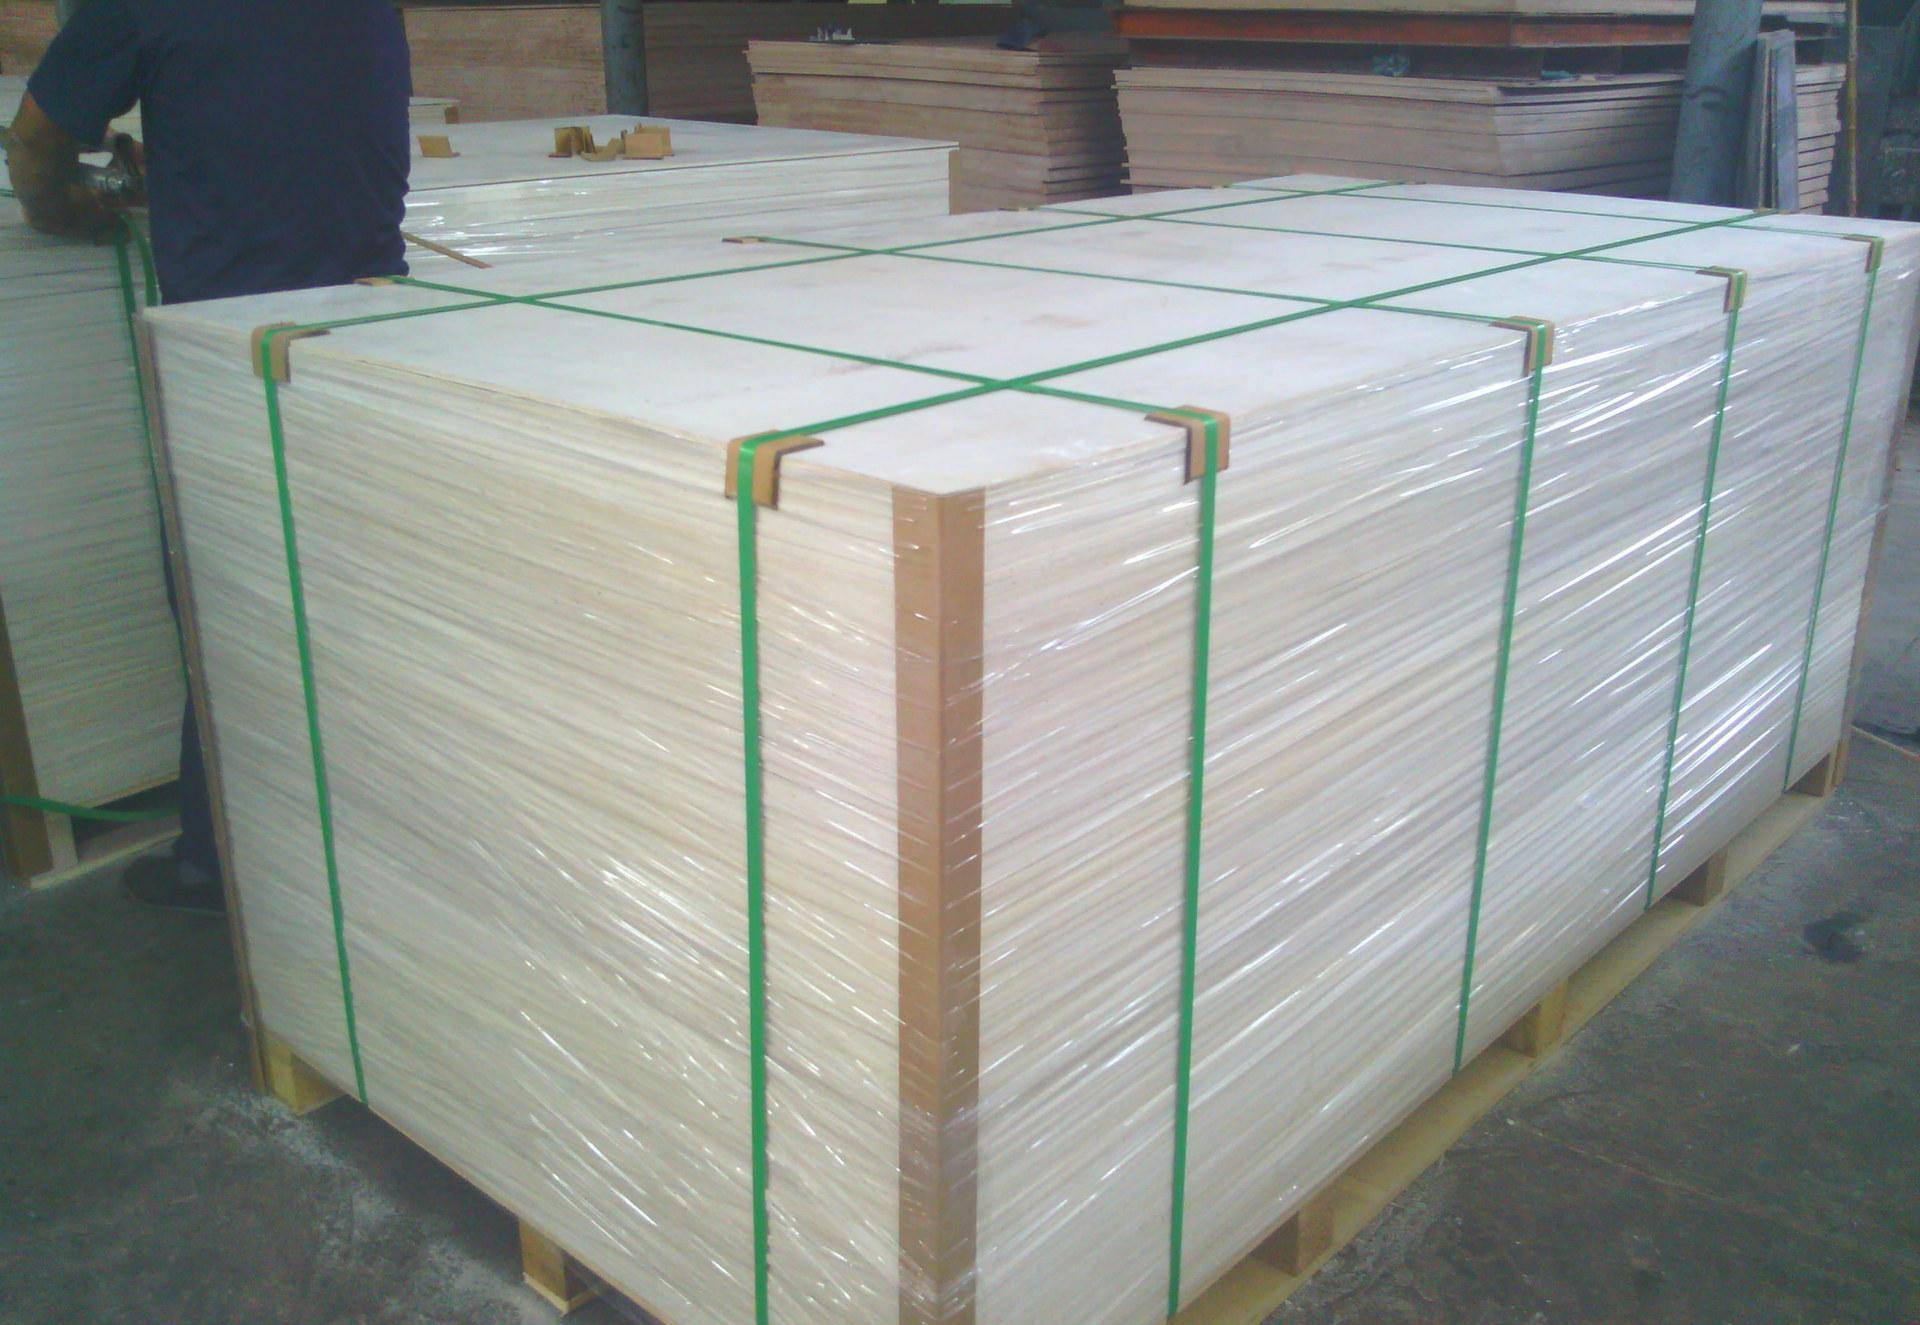 Insulated Roof Panels Construction Innovation Material Magnesium Oxide Board